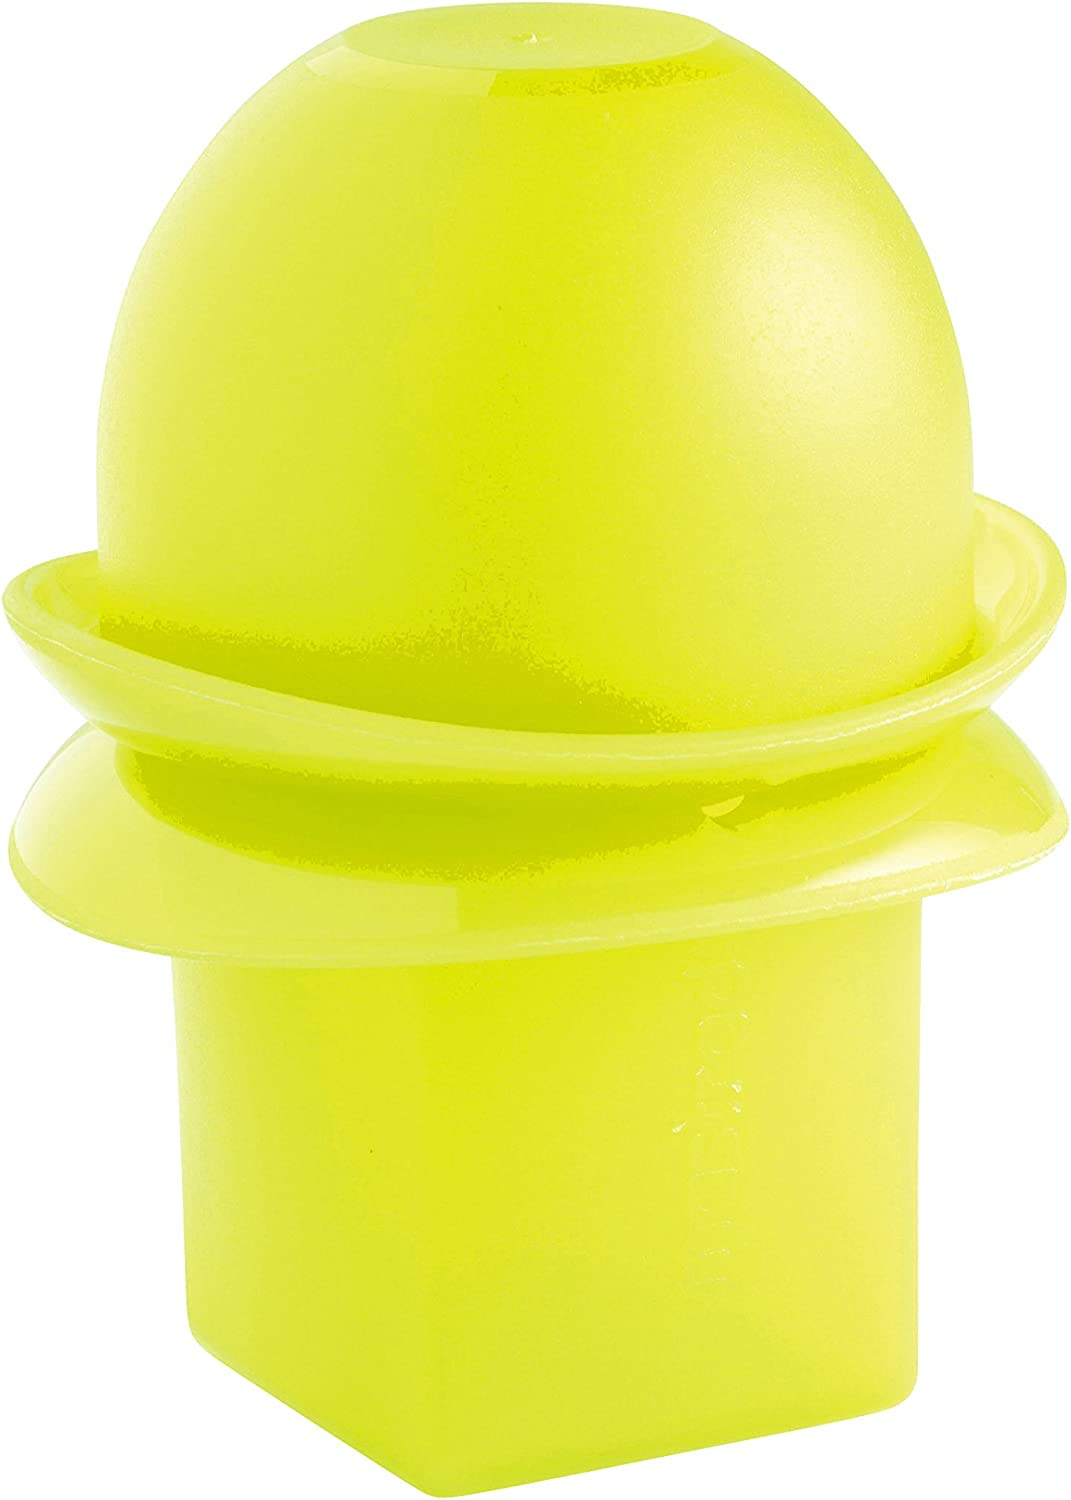 Mastrad Egg Cooker, Green